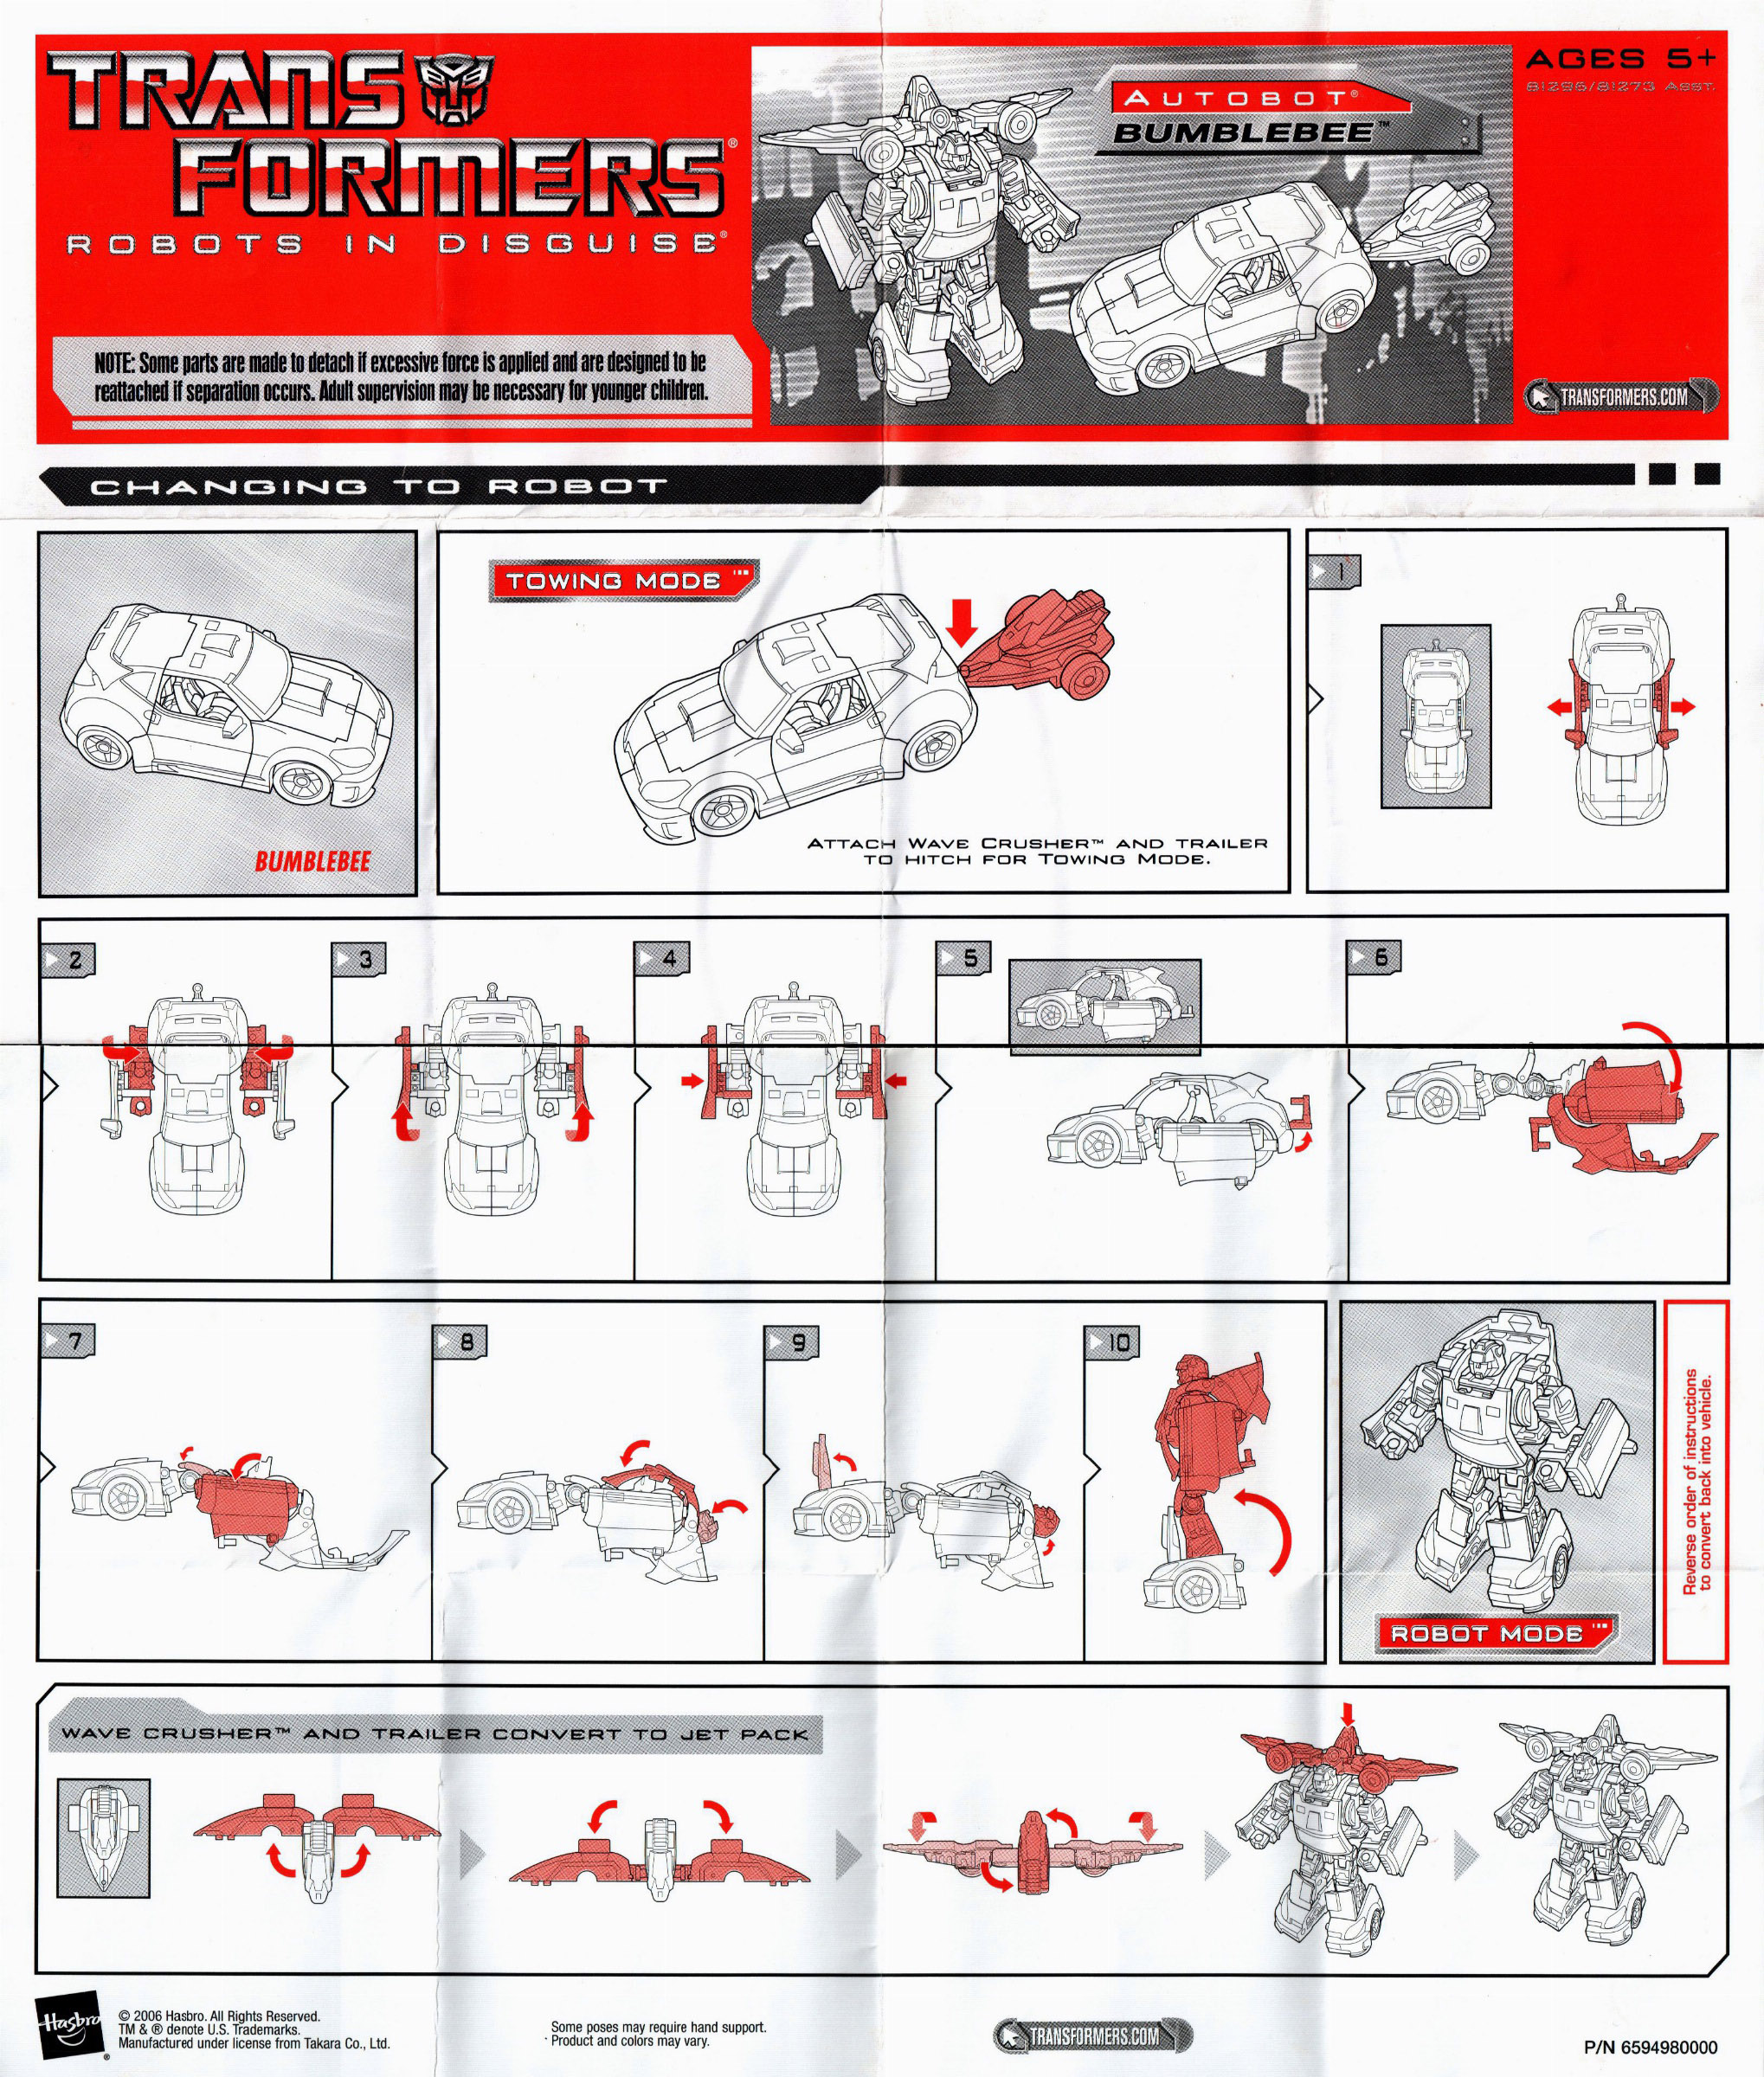 bumblebee transformer instructions 2011